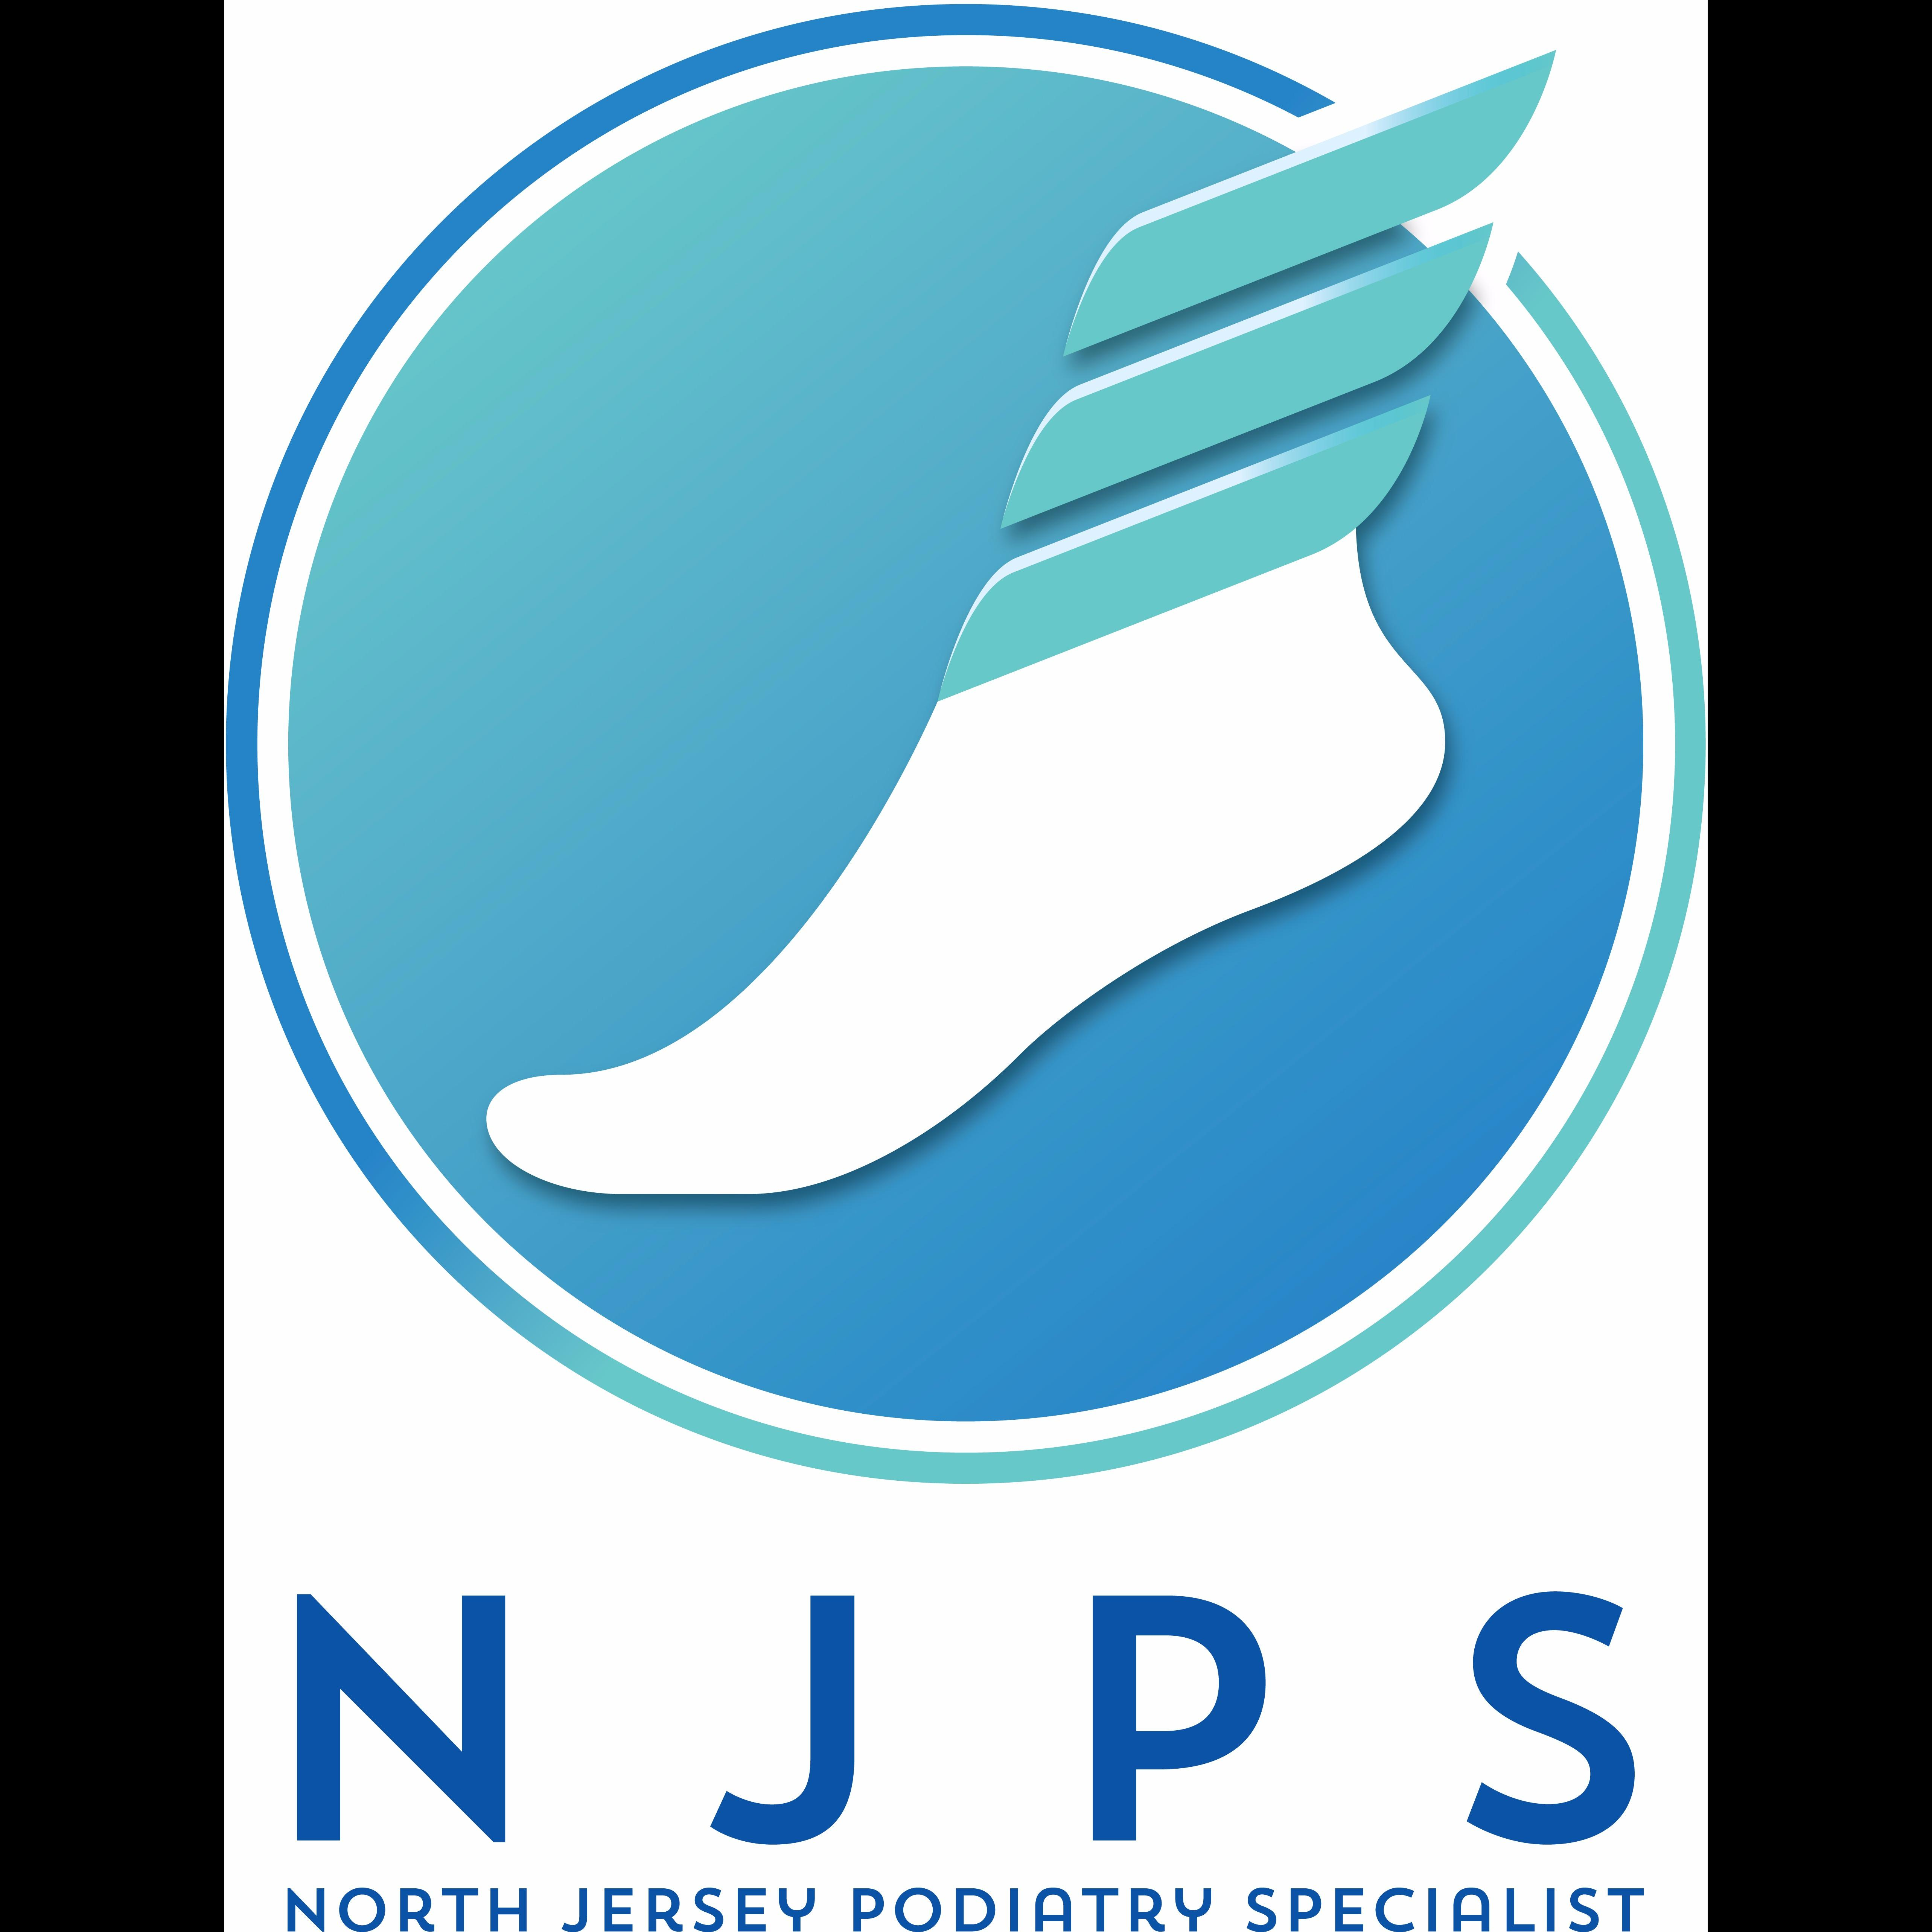 North Jersey Podiatry Specialists image 4